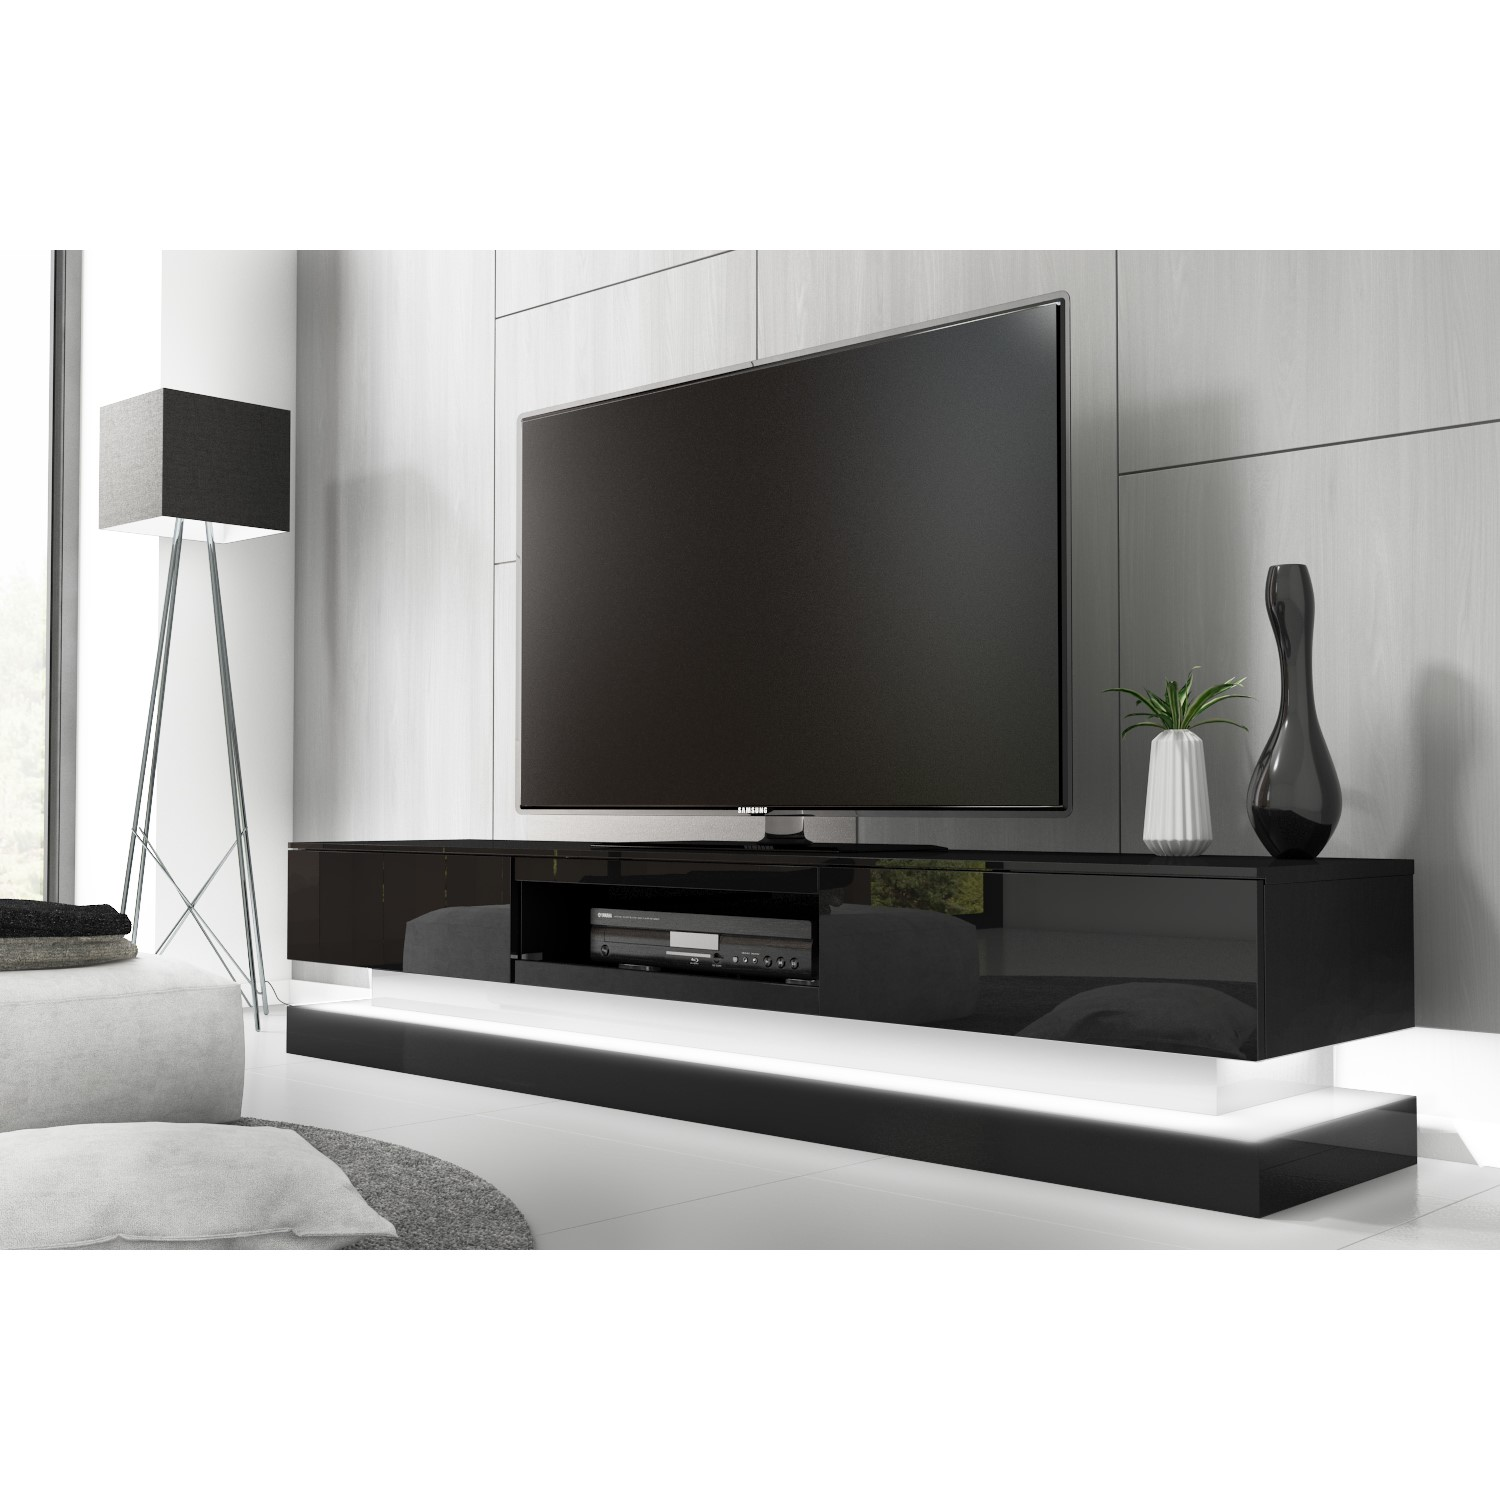 Evoque Black High Gloss TV Unit with Lower LED Lighting | Furniture123